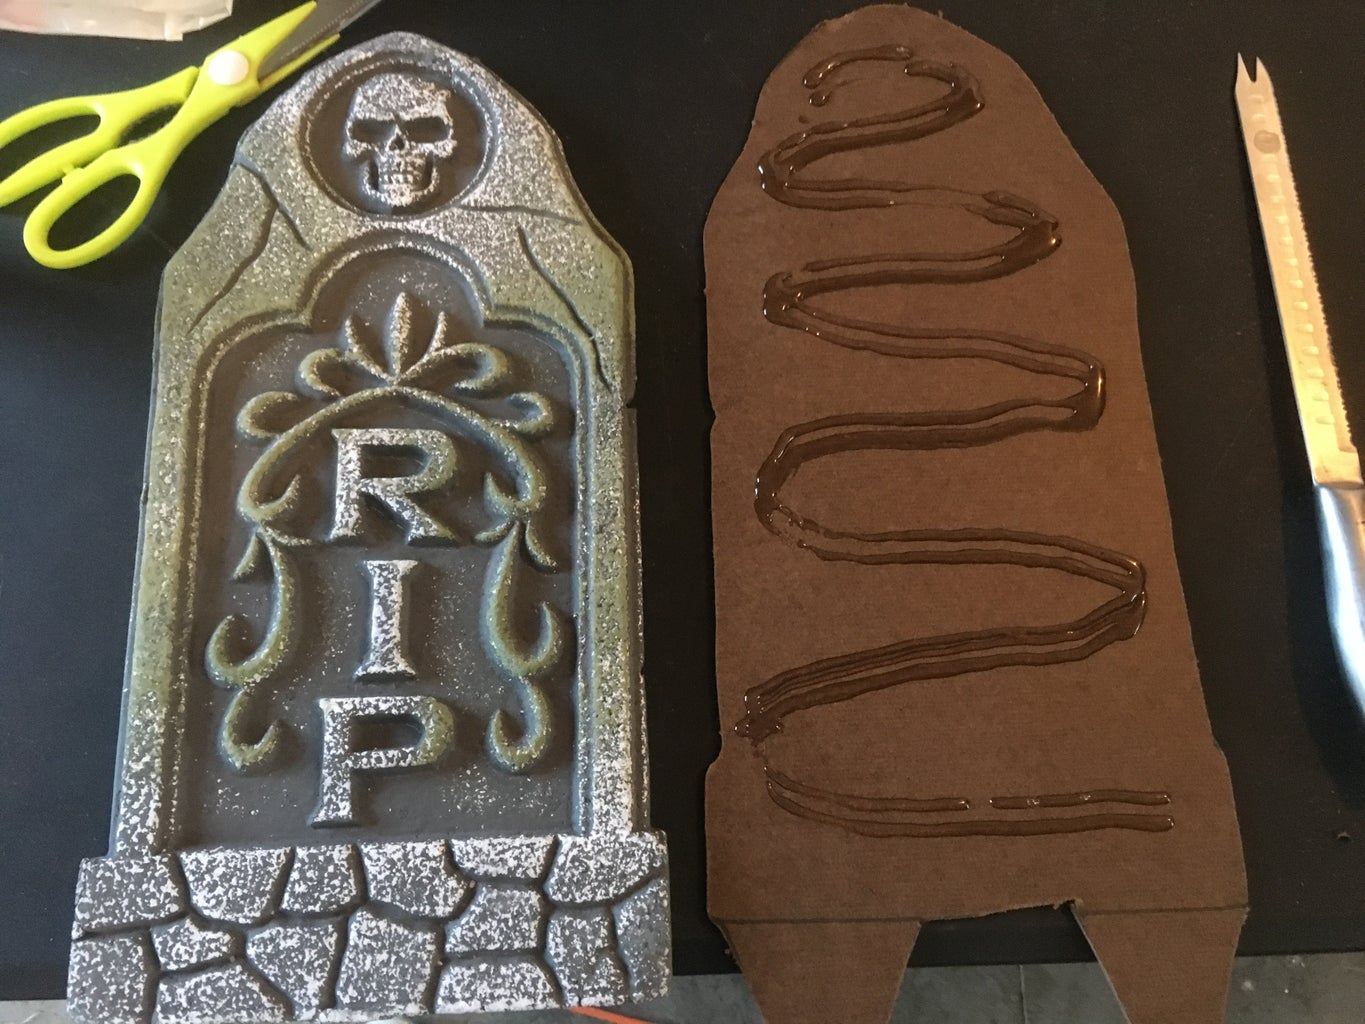 Reinforcing Your Gravestones - Glue and Press